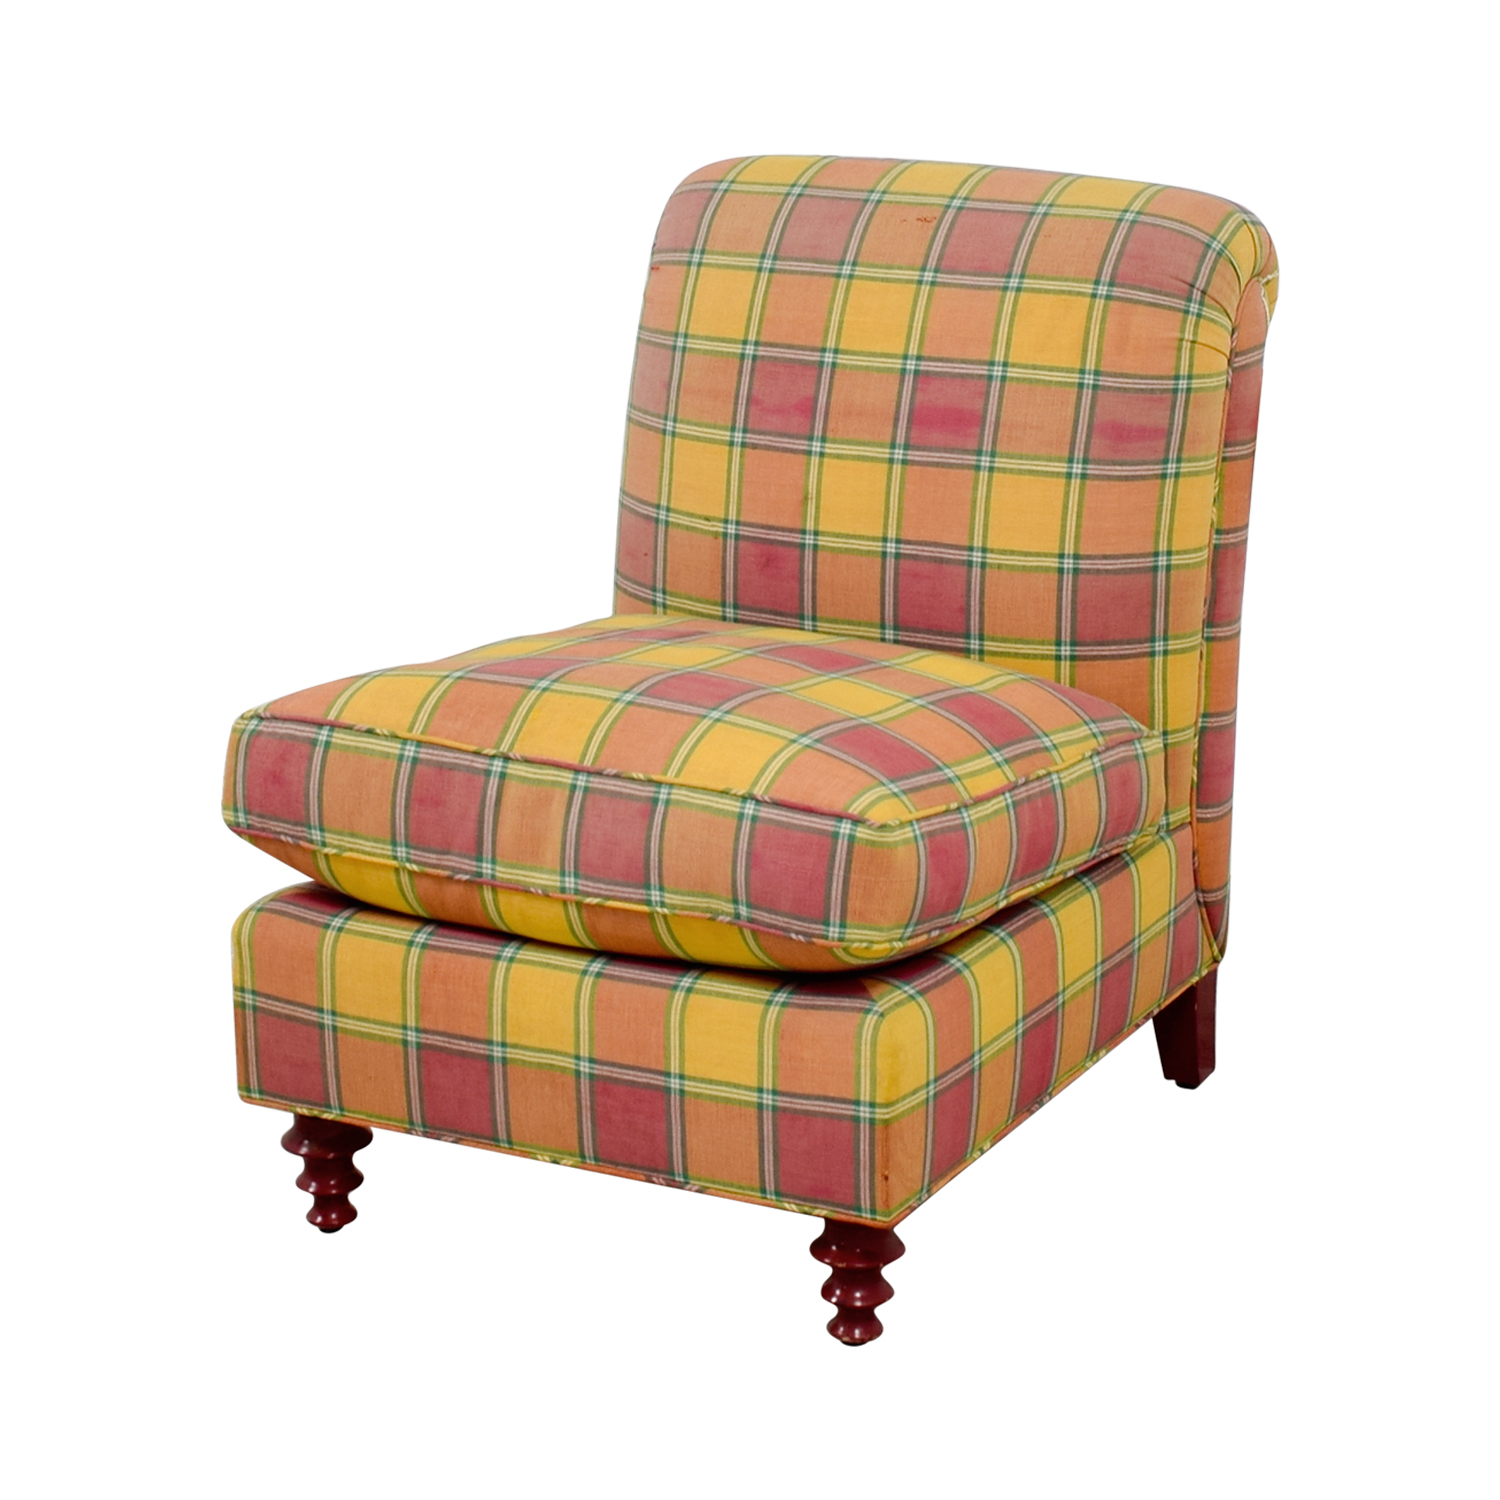 Furniture Masters Furniture Masters Red and Yellow Plaid Accent Chair discount